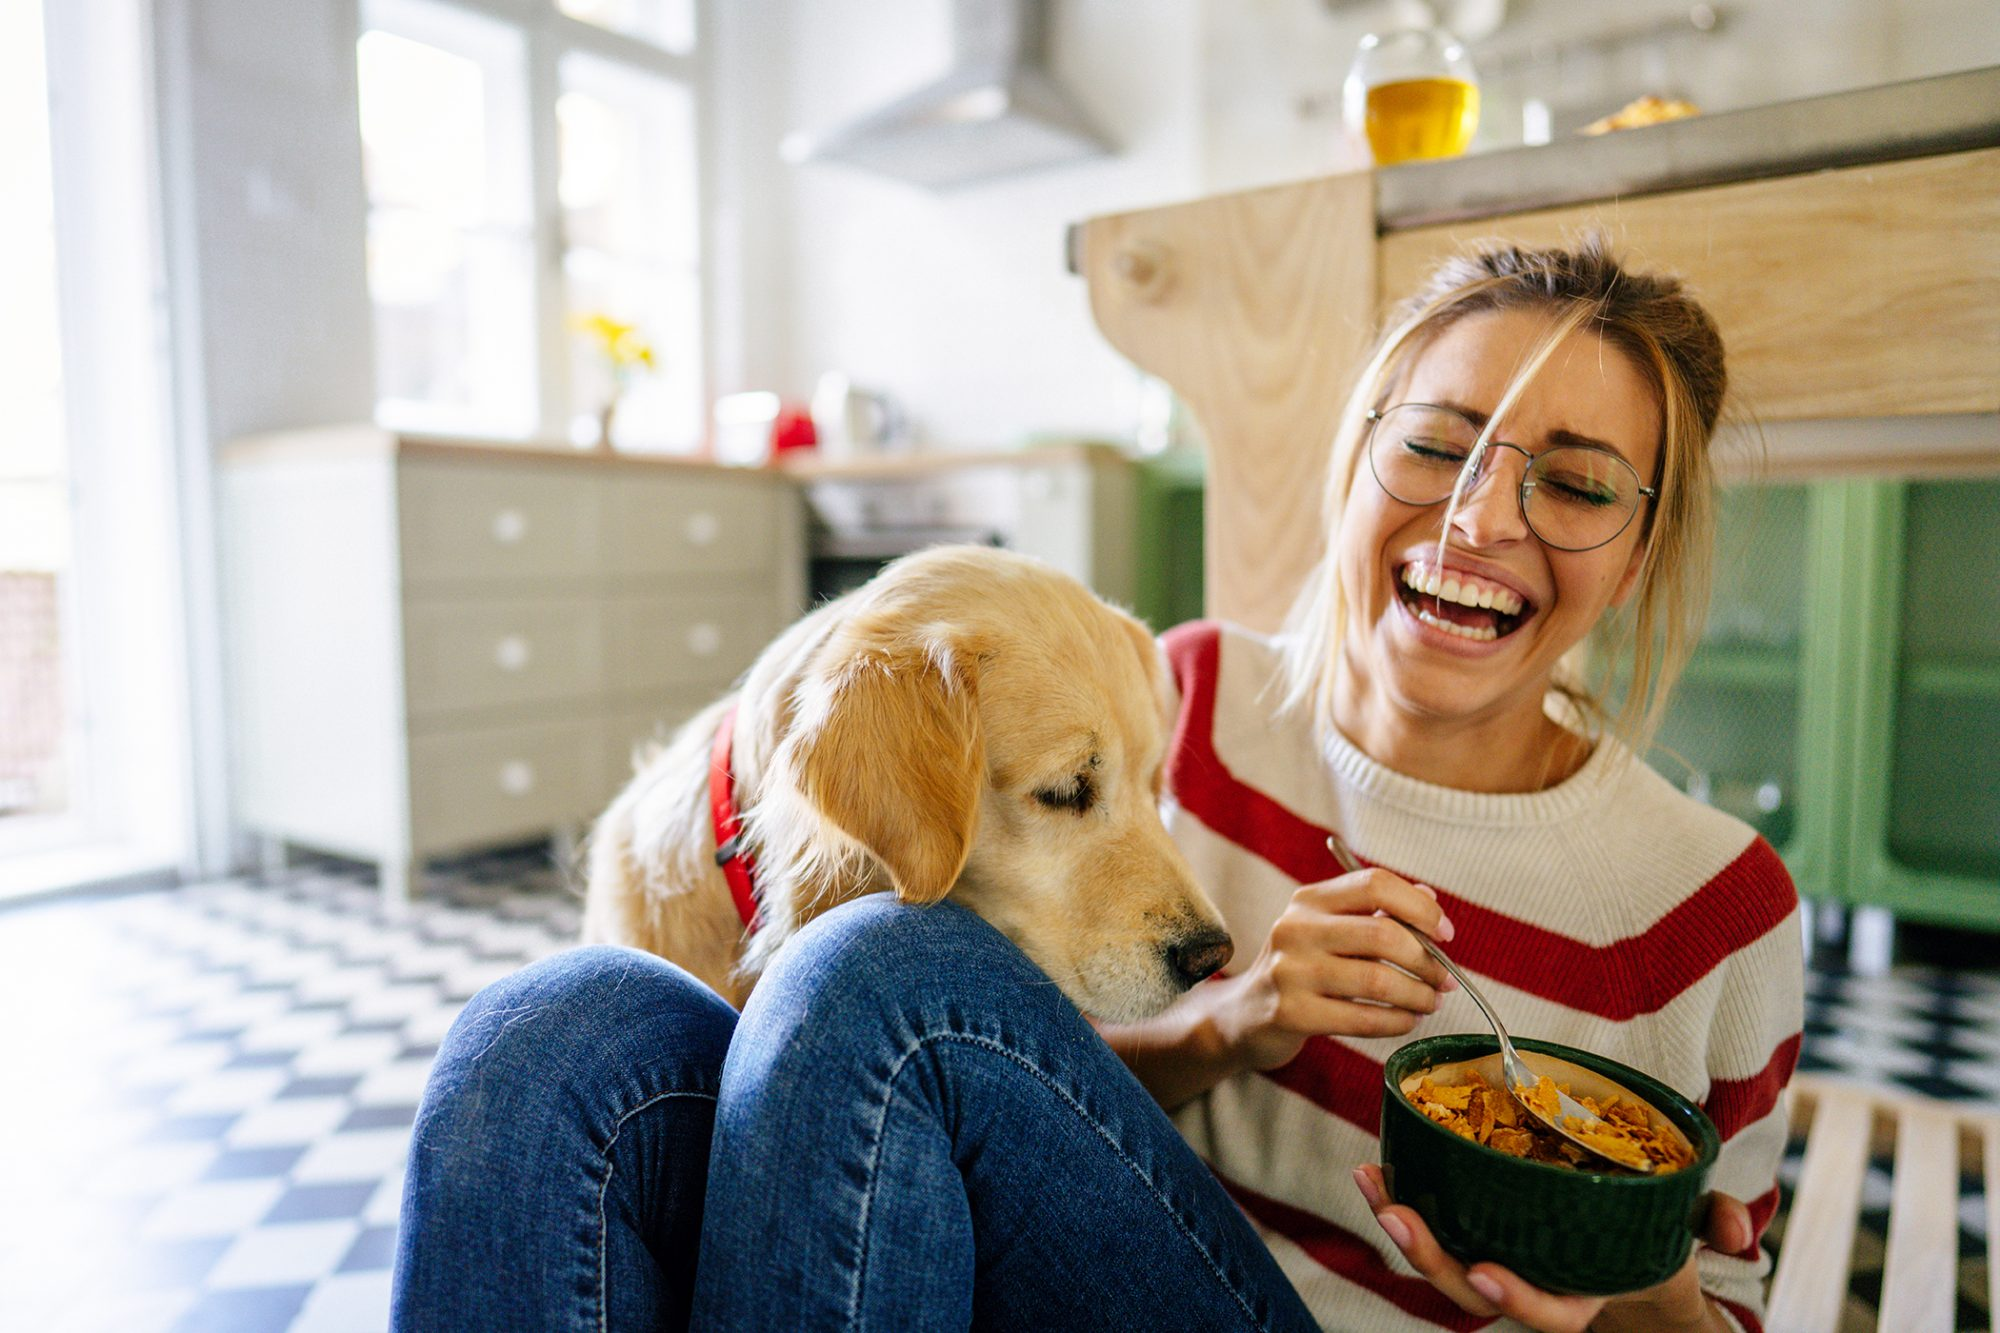 woman sitting on kitchen floor laughing and eating food next to her dog